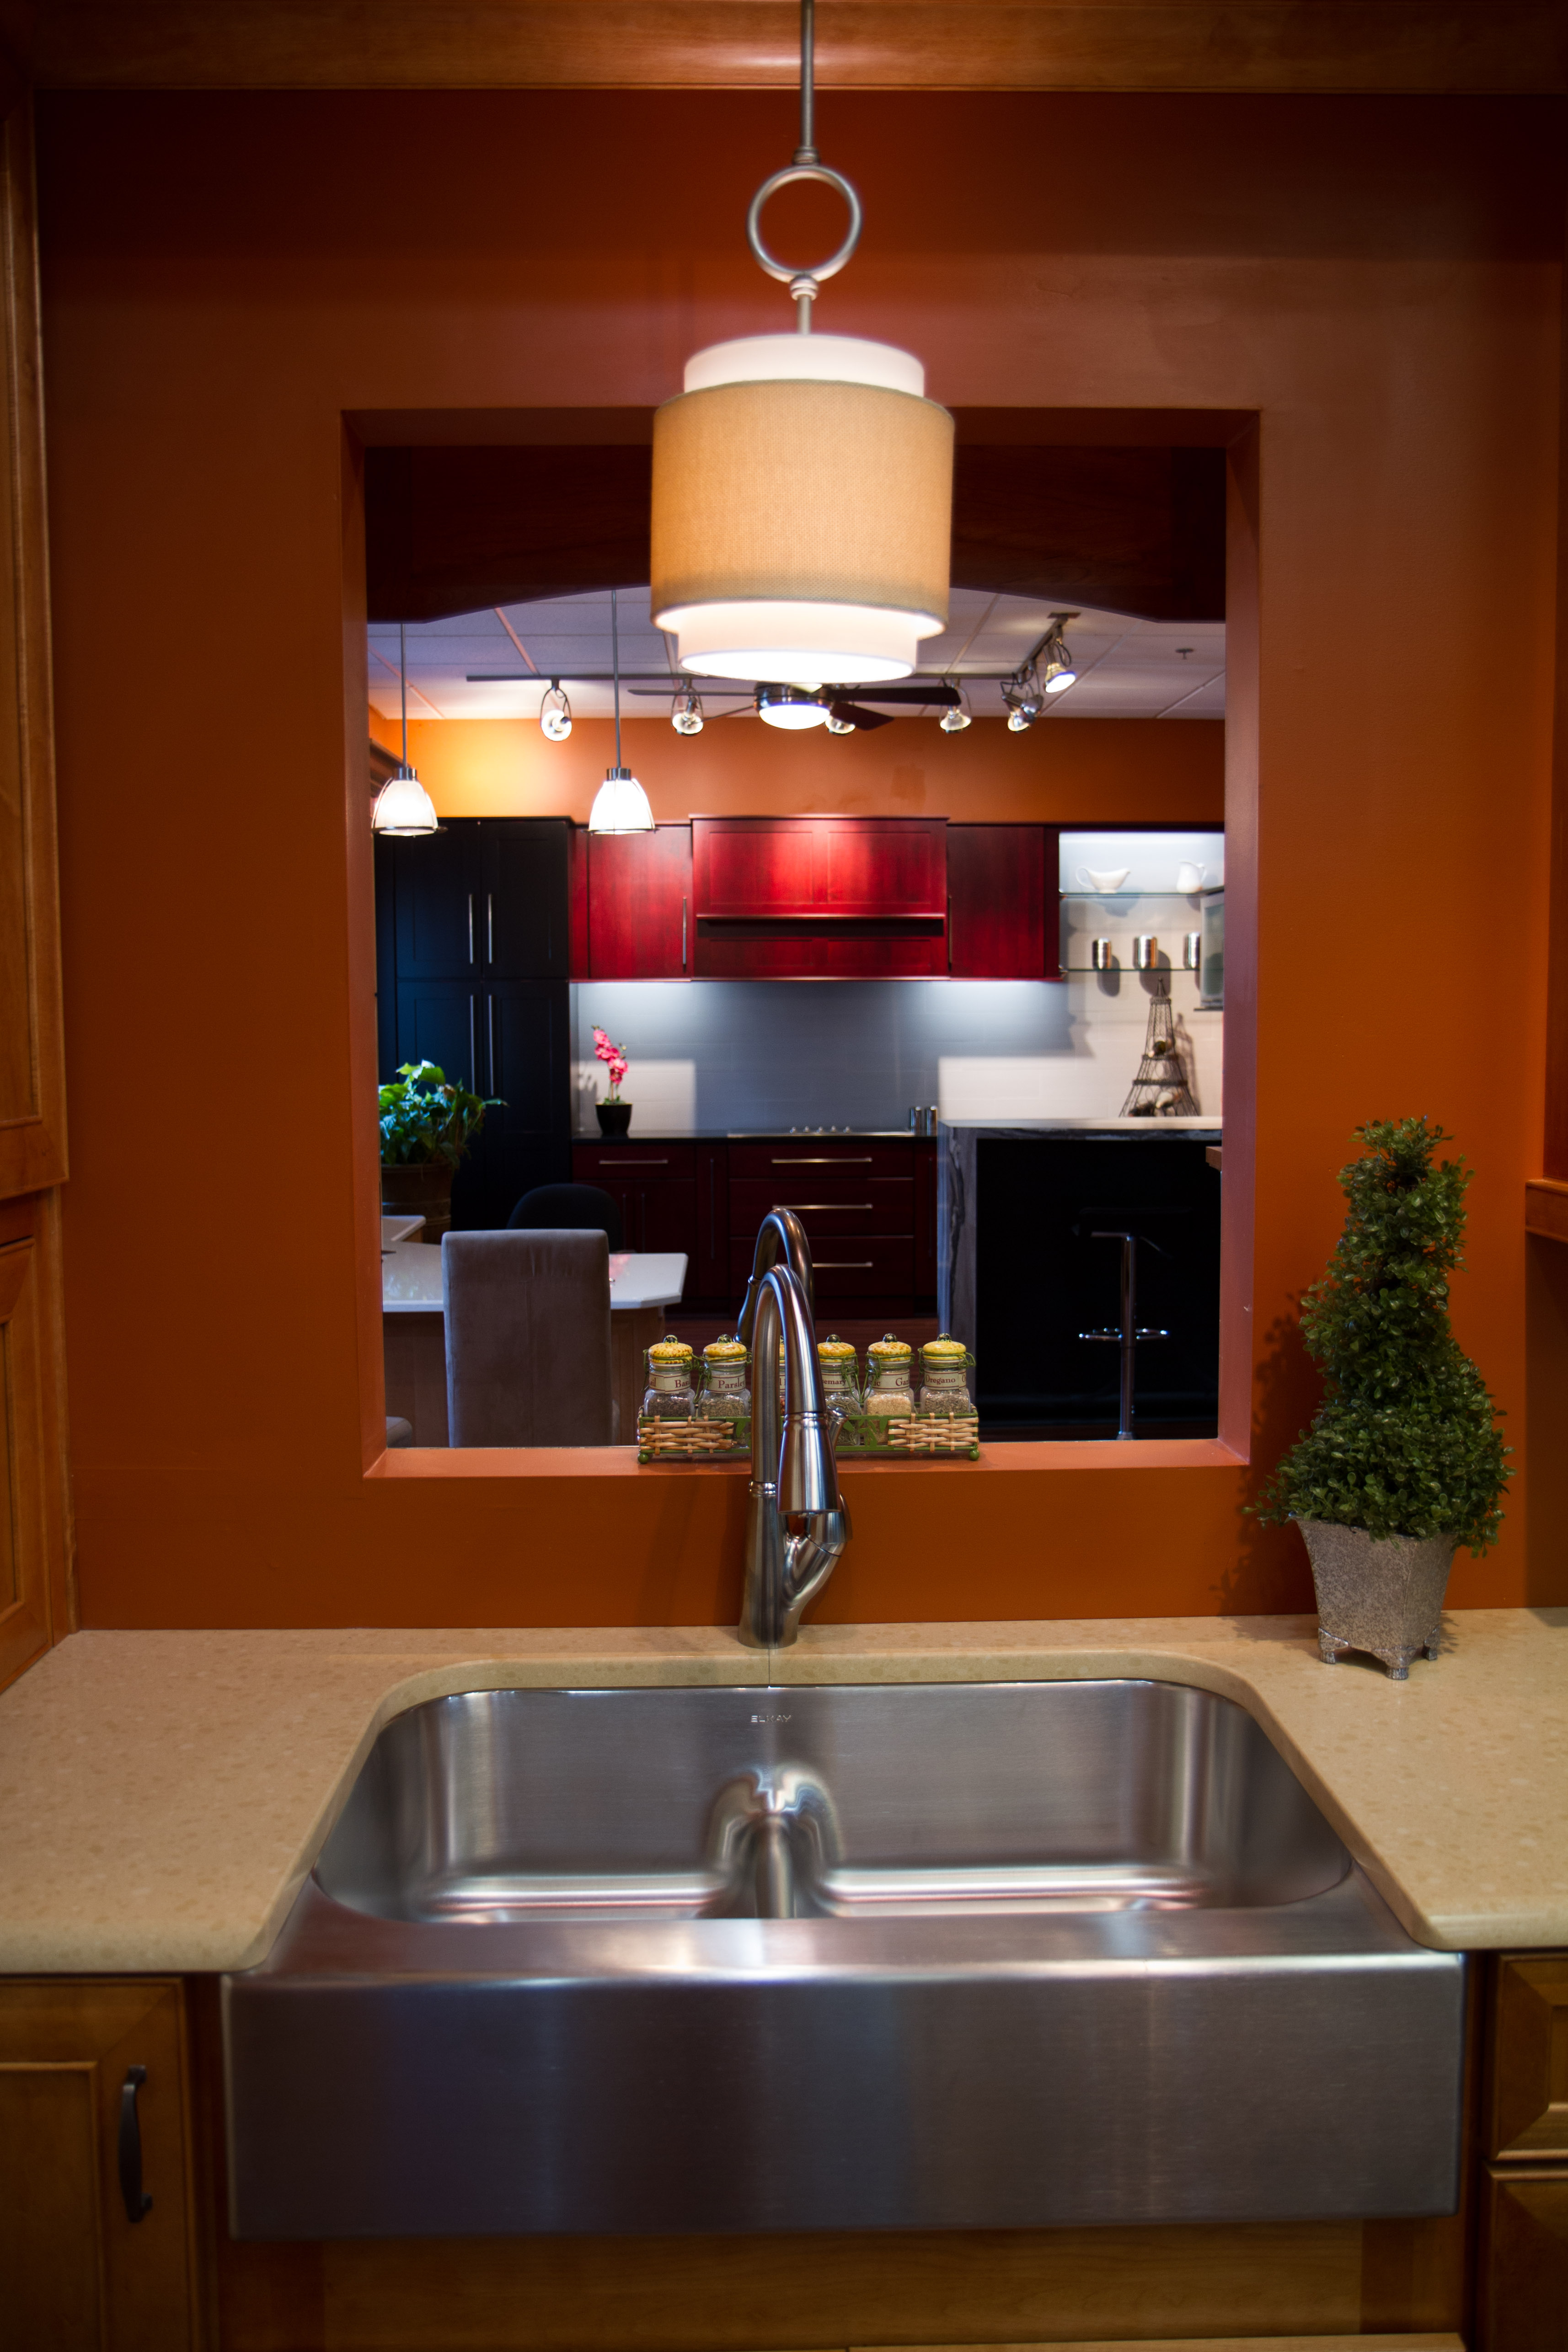 Kitchen Lighting: Shed Some Light With Four Types